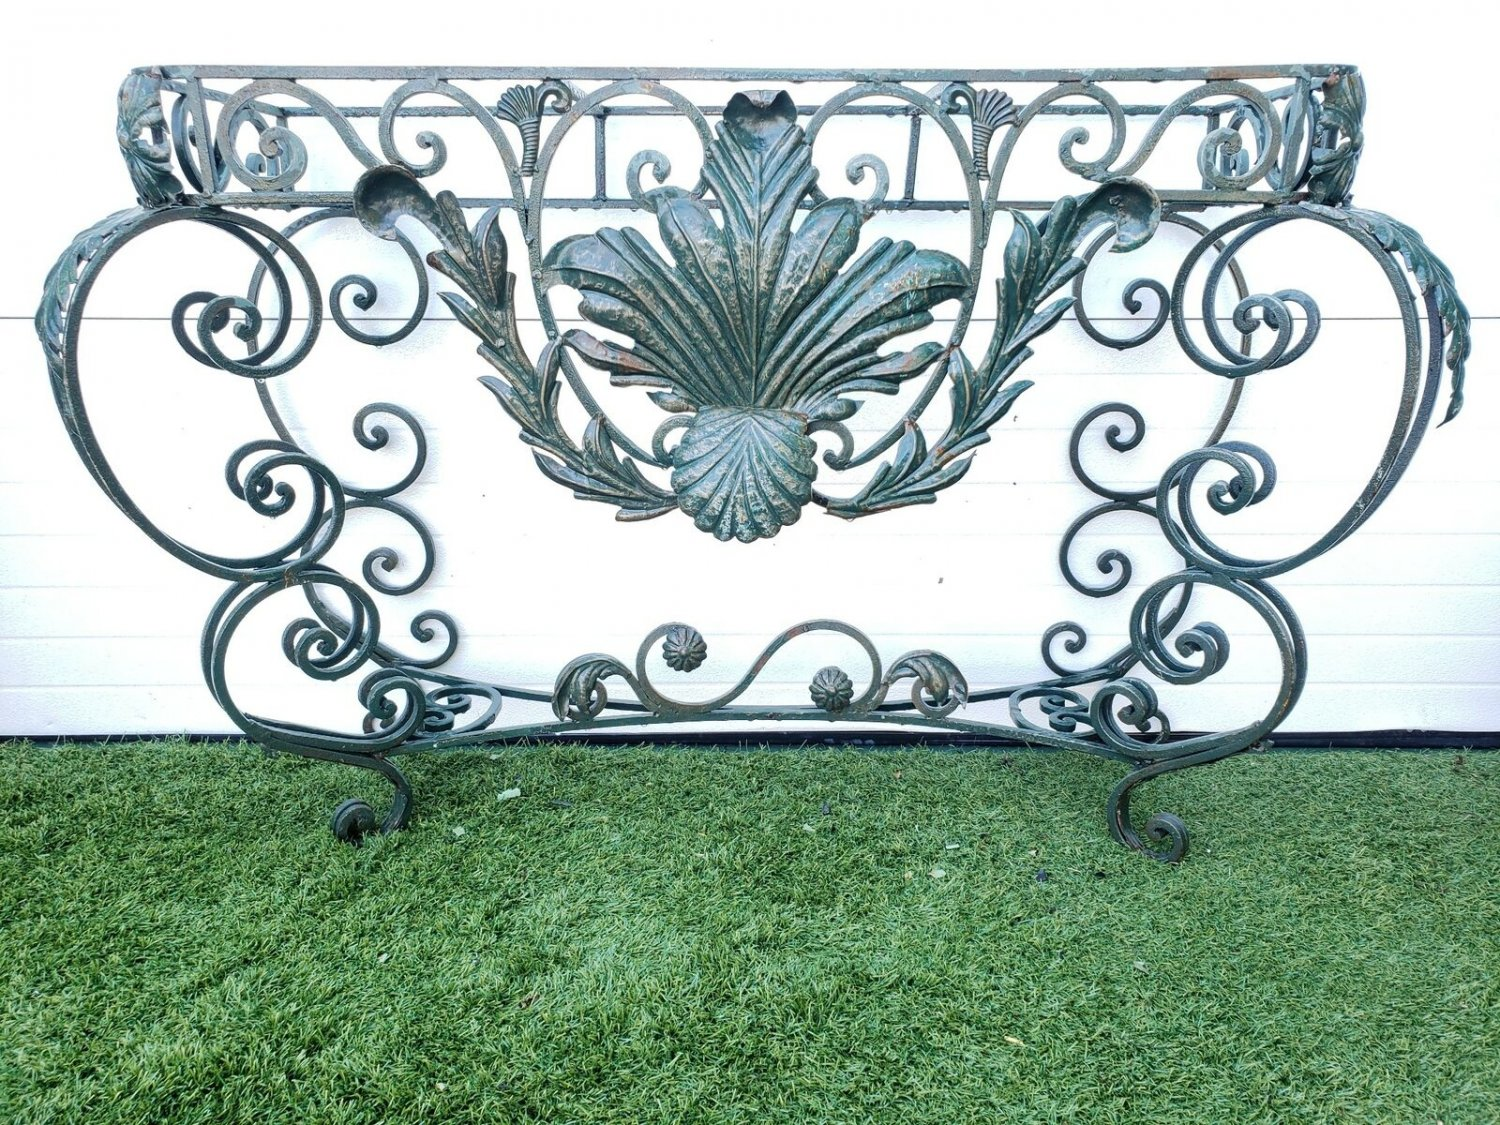 Regal French Antique Green Painted Acanthus Leaf Motif Wrought Iron Table